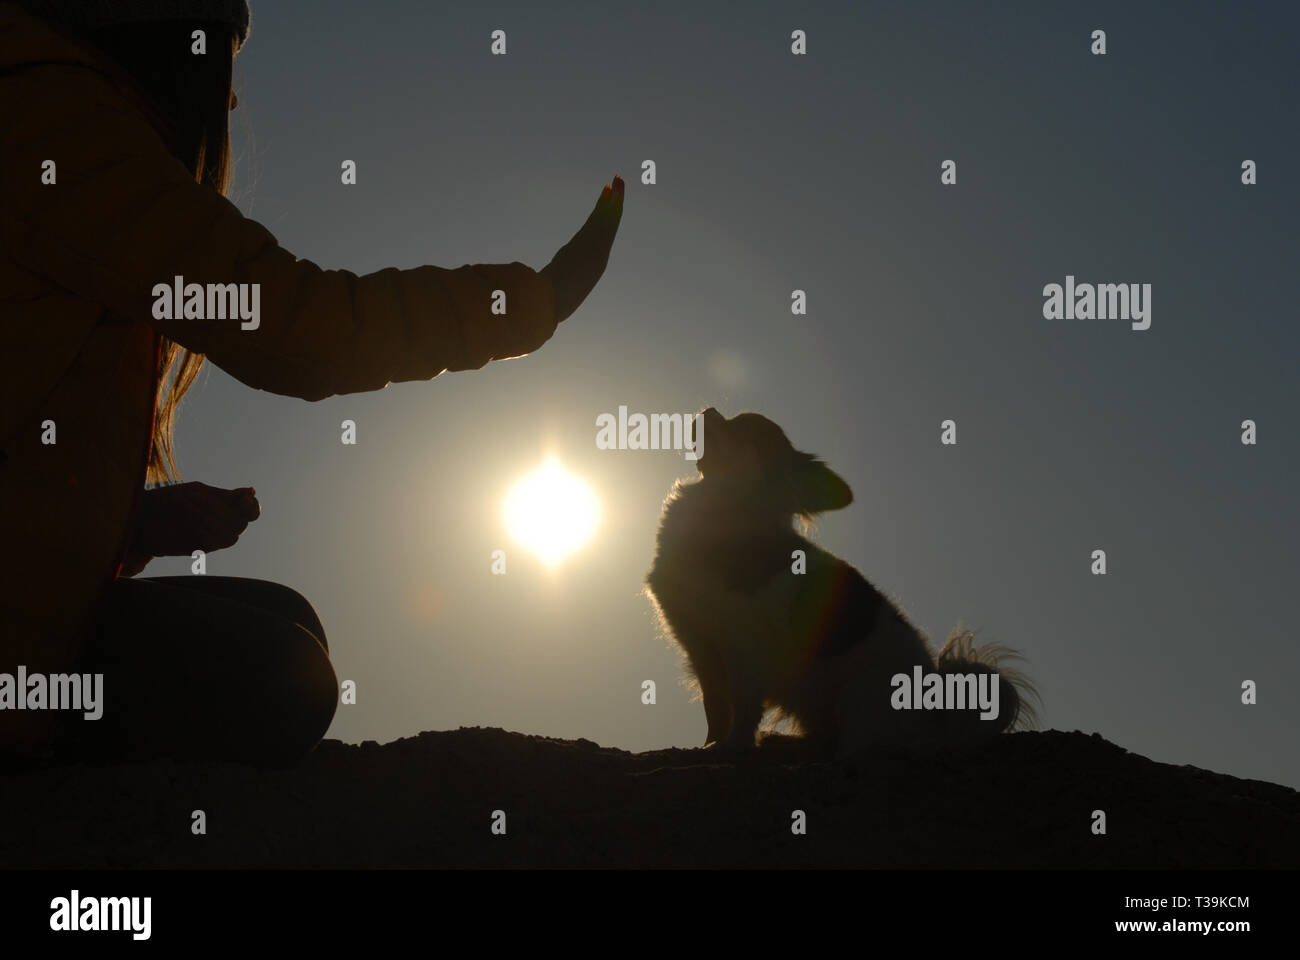 canine obedience concept of young dog trainer with hand gesture and little chihuahua dog sitting on sunset - Stock Image